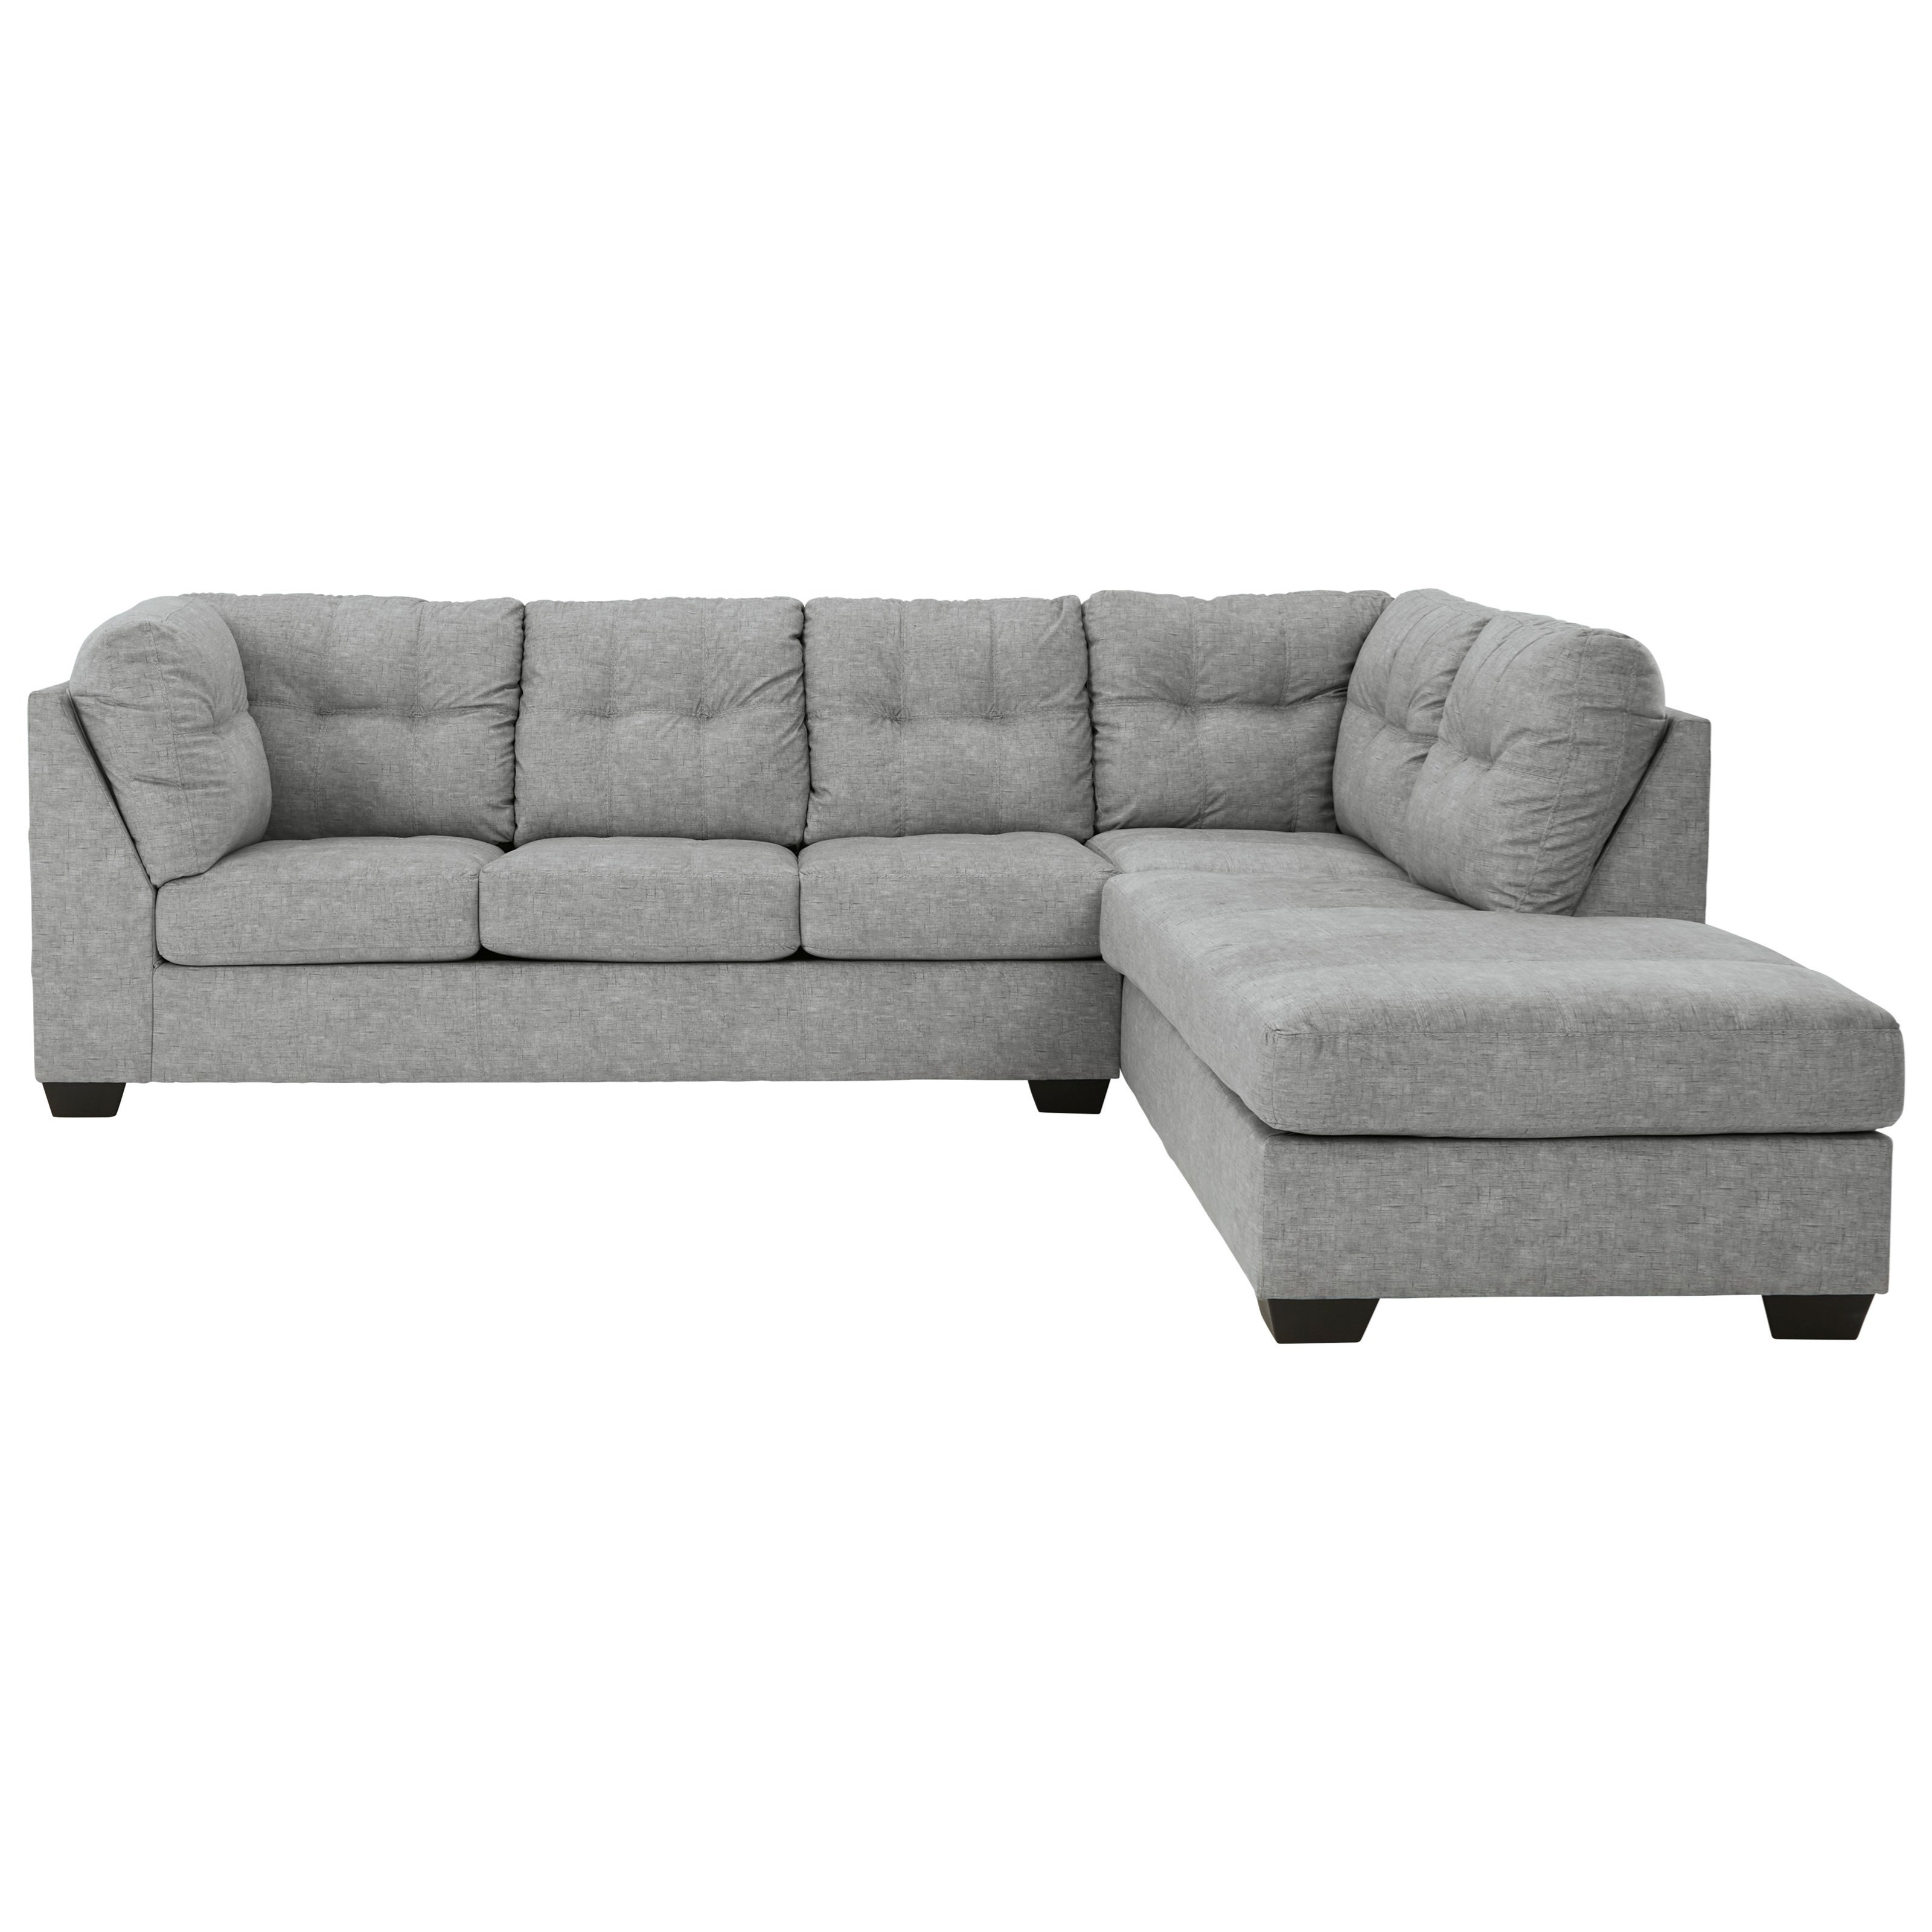 Falkirk 2-Piece Sectional with Chaise by Benchcraft at Walker's Furniture